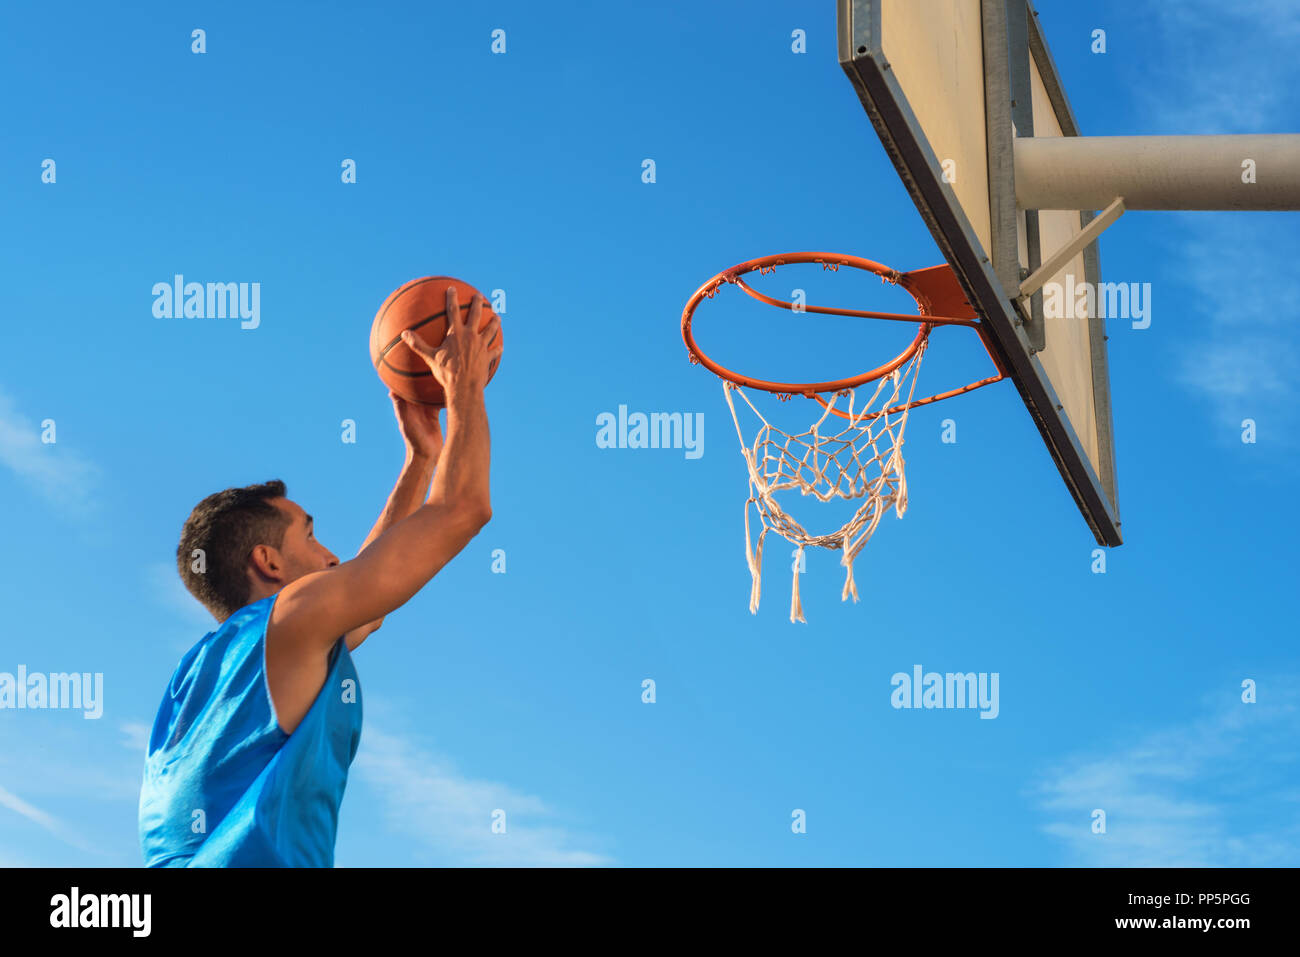 Street basketball athlete performing slam dunk on the court - Stock Image